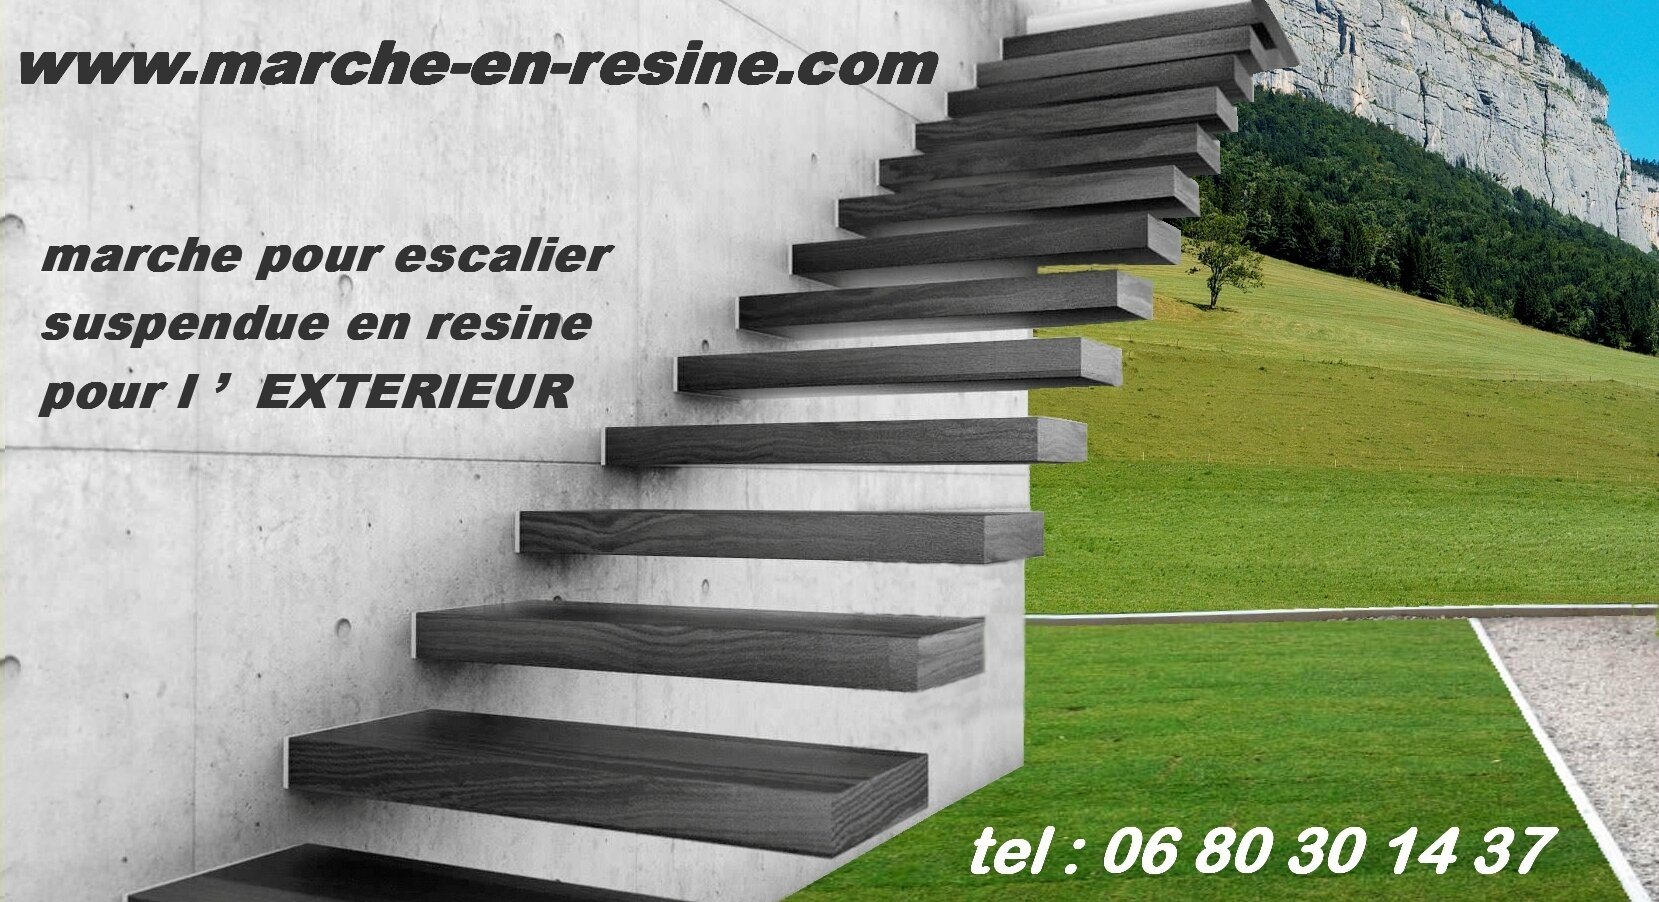 floating stair concrete steps escalier suspendu paris renseignement tel 0680301437. Black Bedroom Furniture Sets. Home Design Ideas